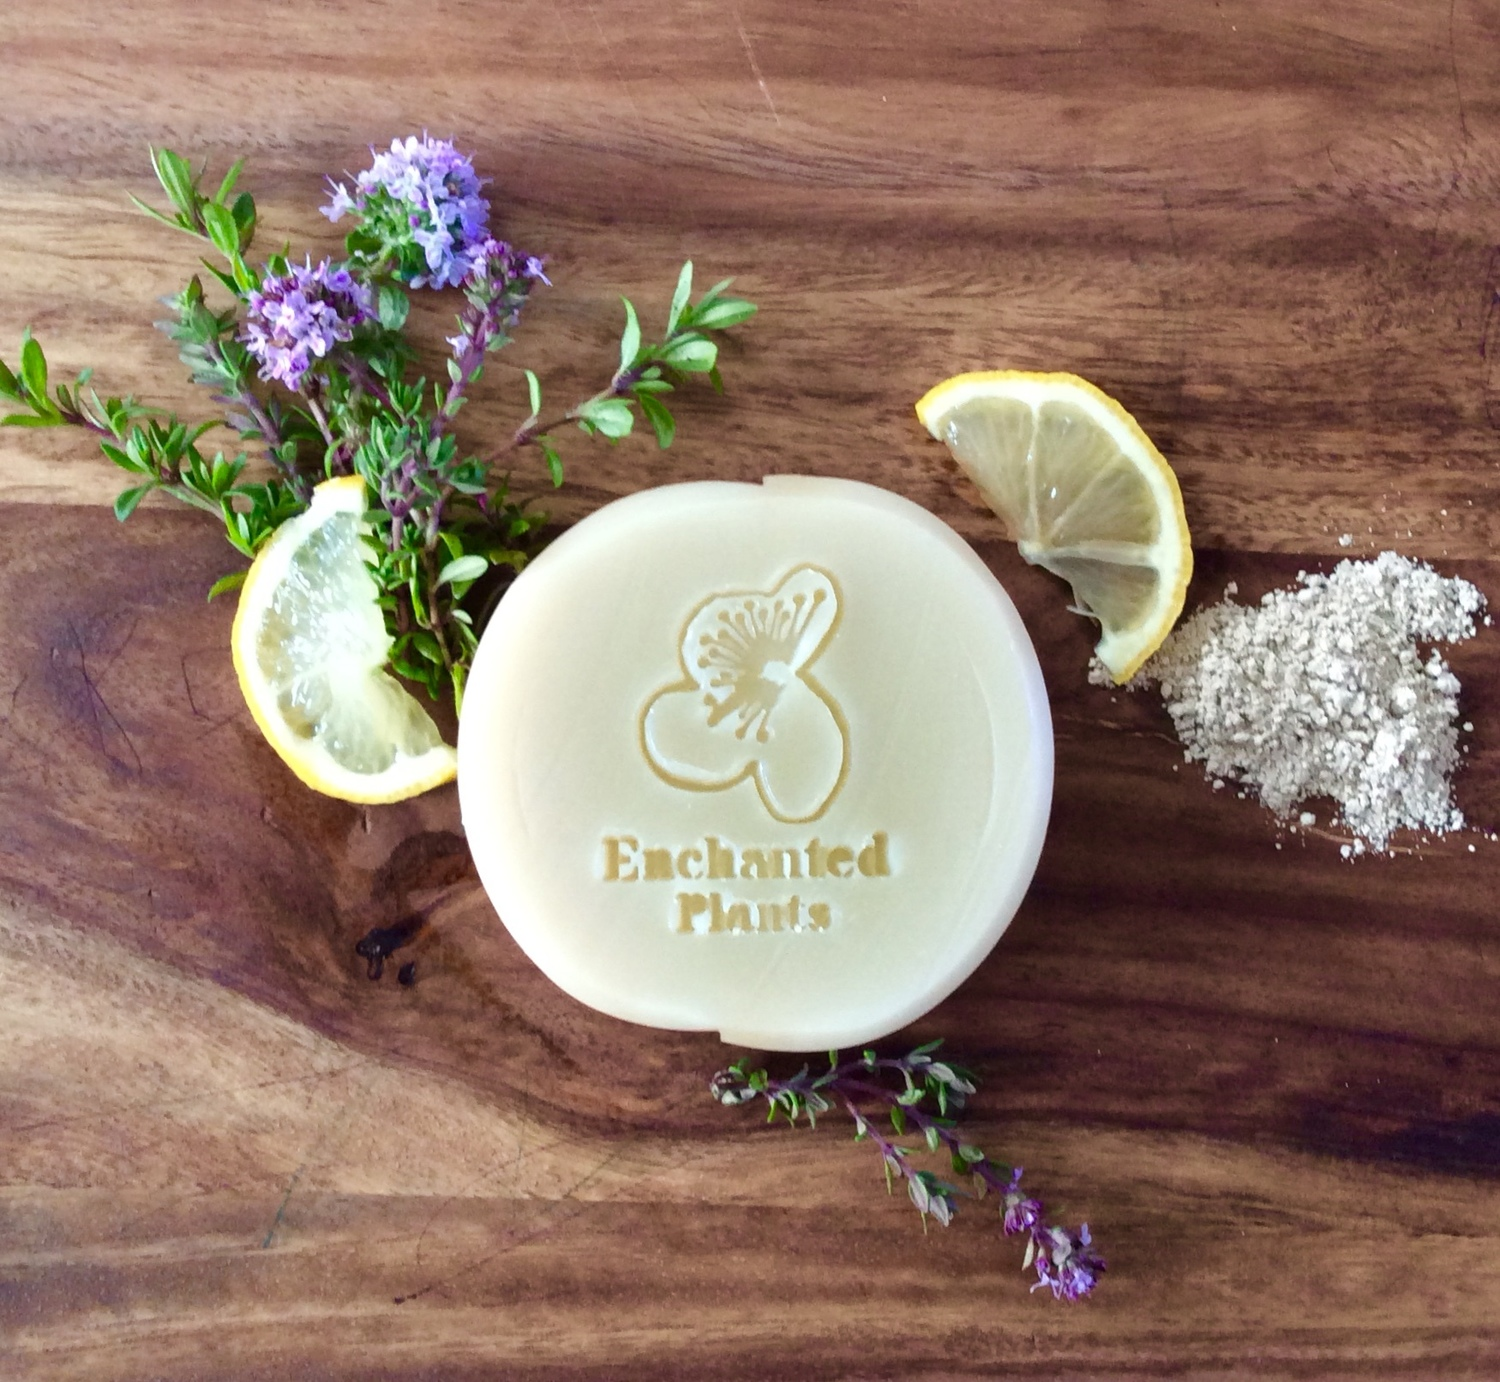 Enchanted Plants bar soap